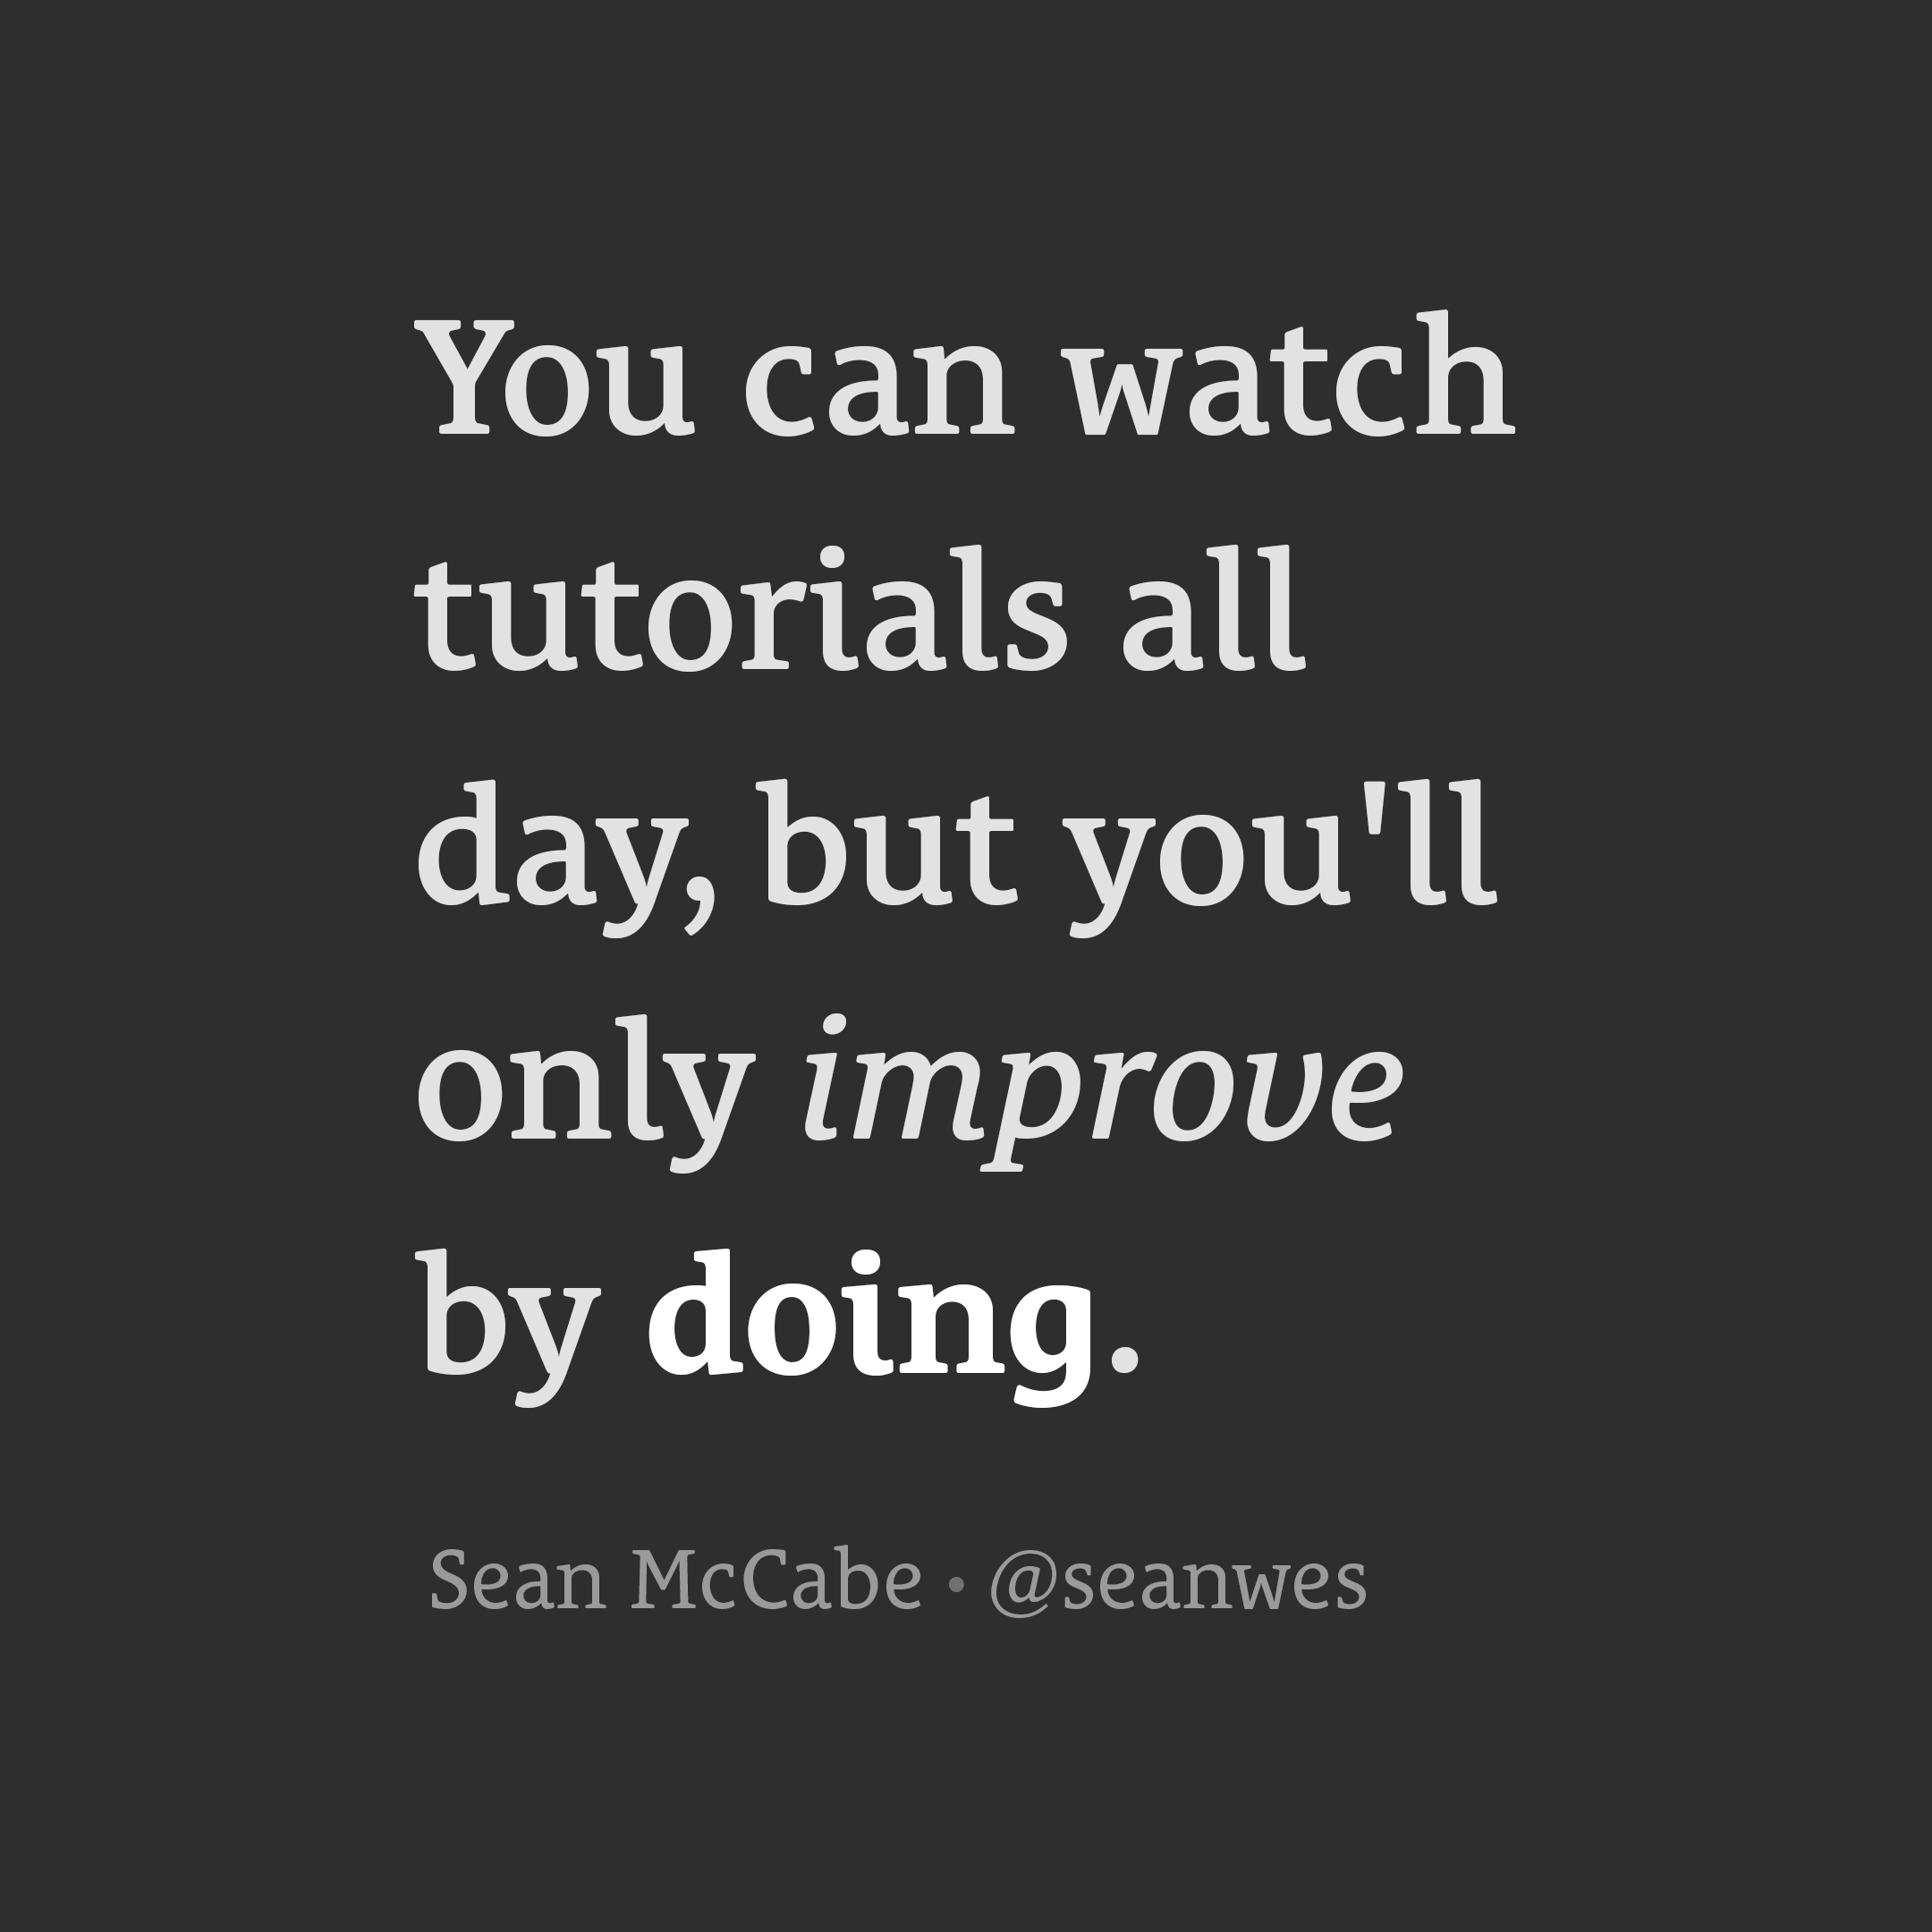 You can watch tutorials all day, but you'll only improve by doing.